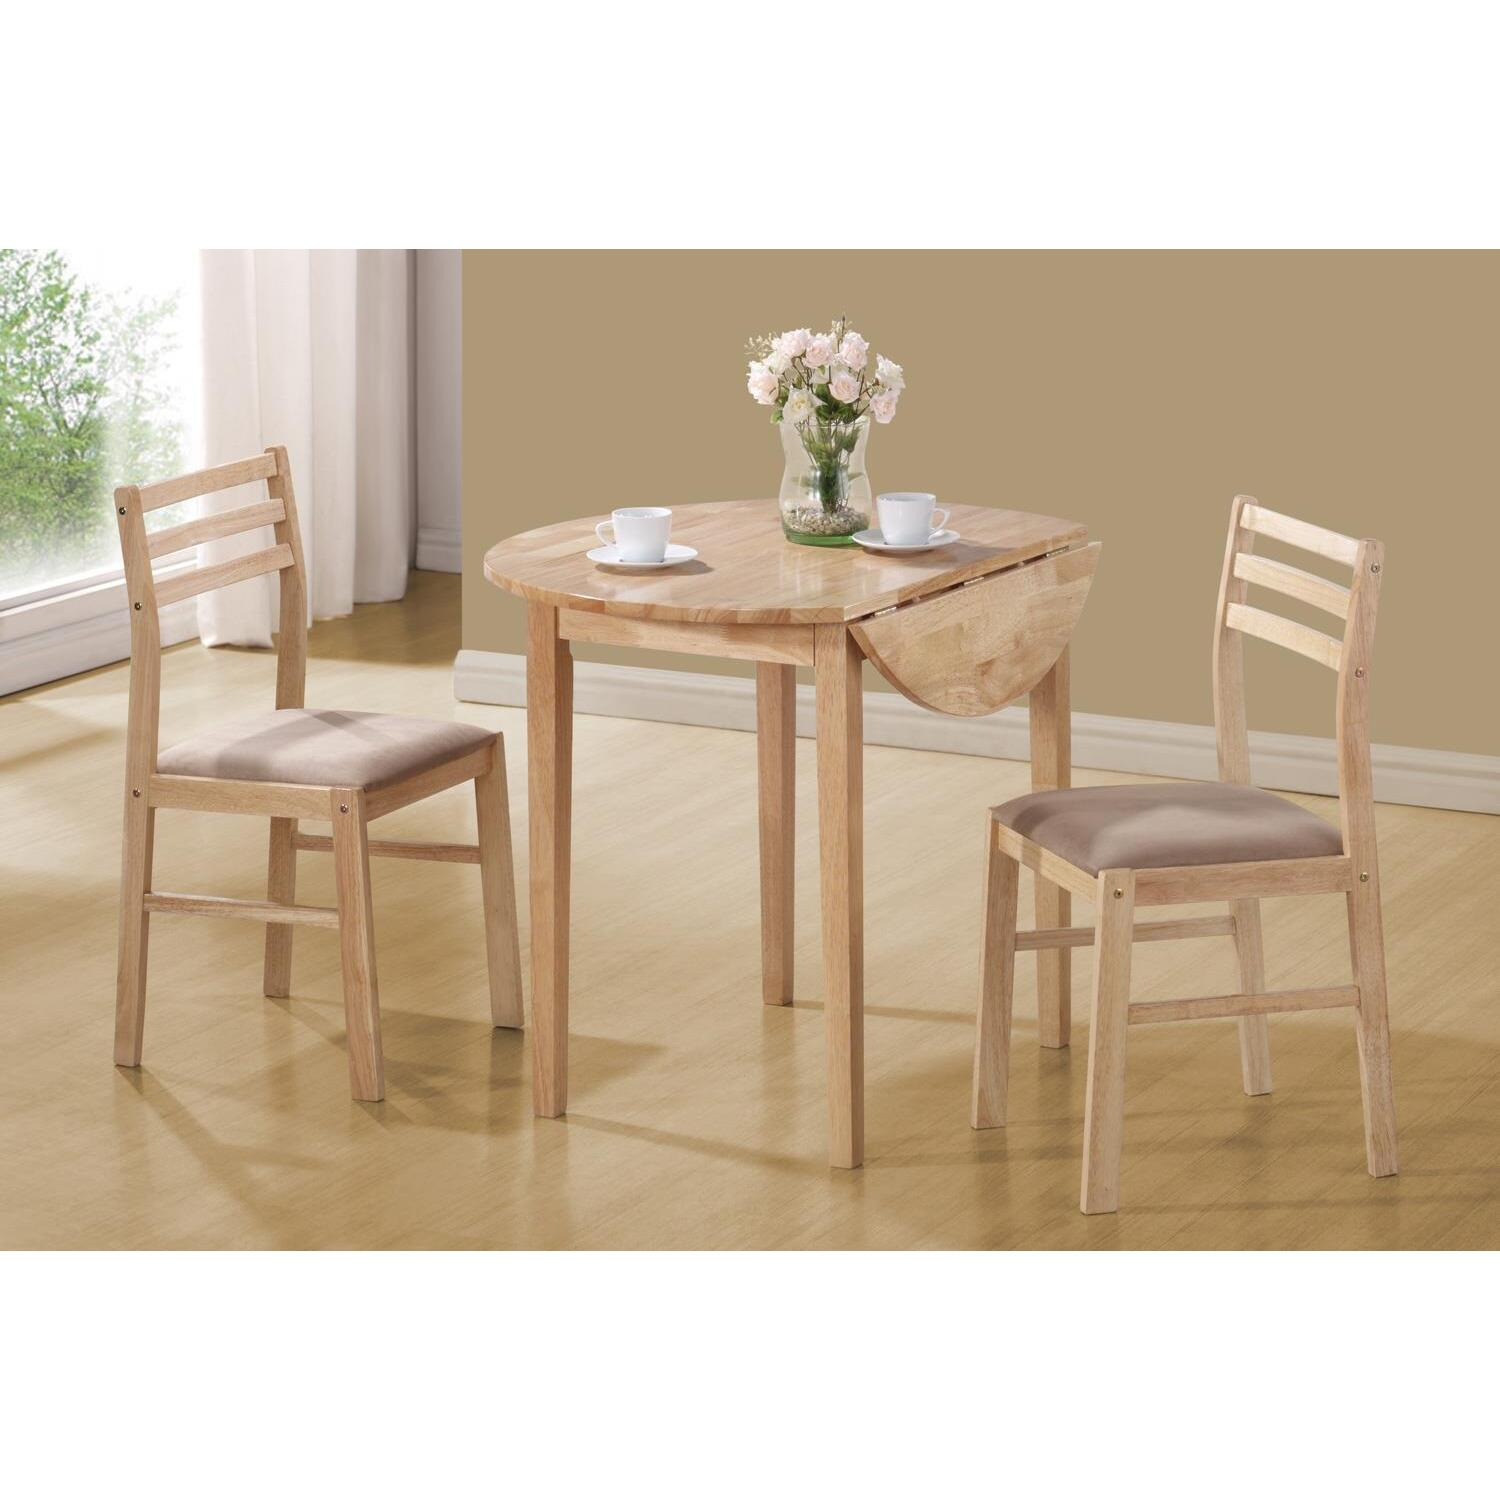 coaster 3 dining set by oj commerce 130005 178 02